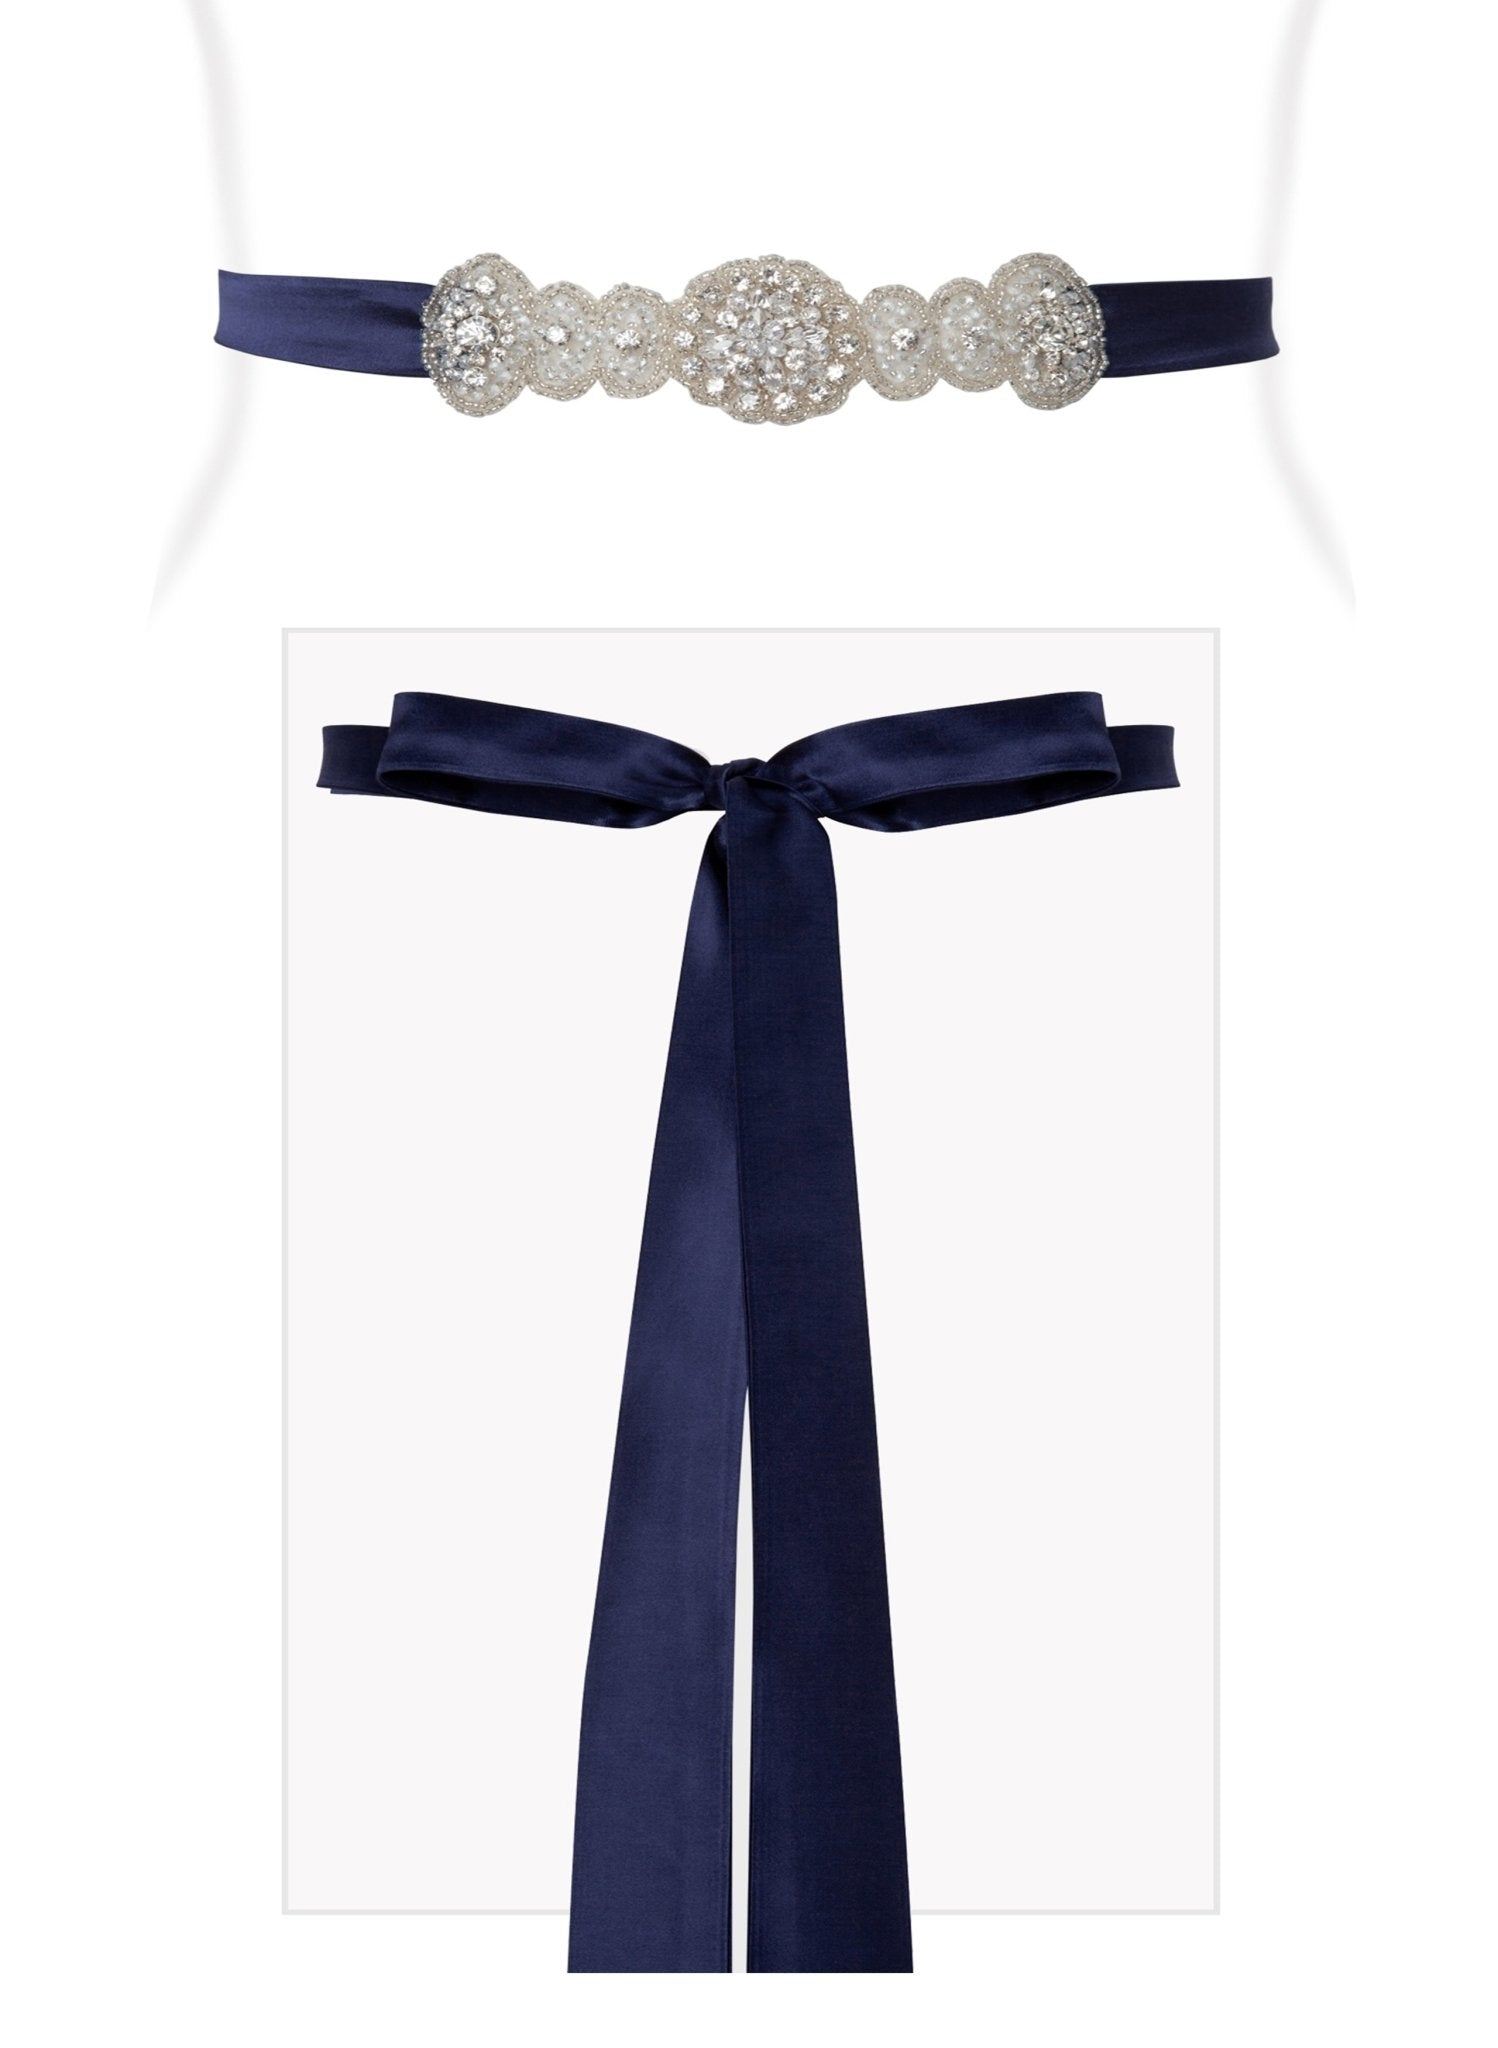 Aurelia Vintage Sash - Eclipse Blue - Mums and Bumps